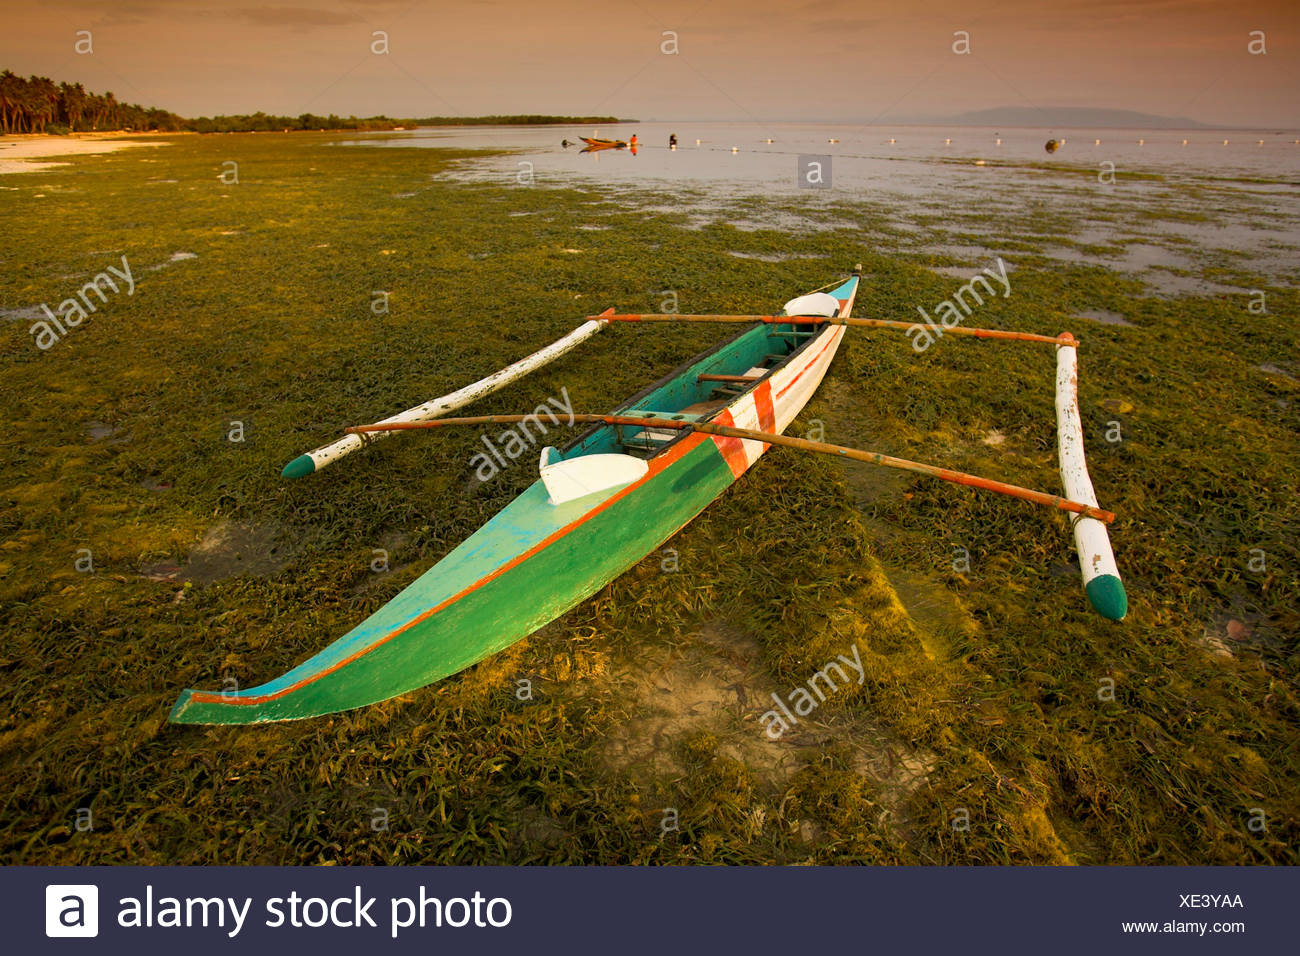 Fischerboat with outriggers on a beach, Philippines - Stock Image